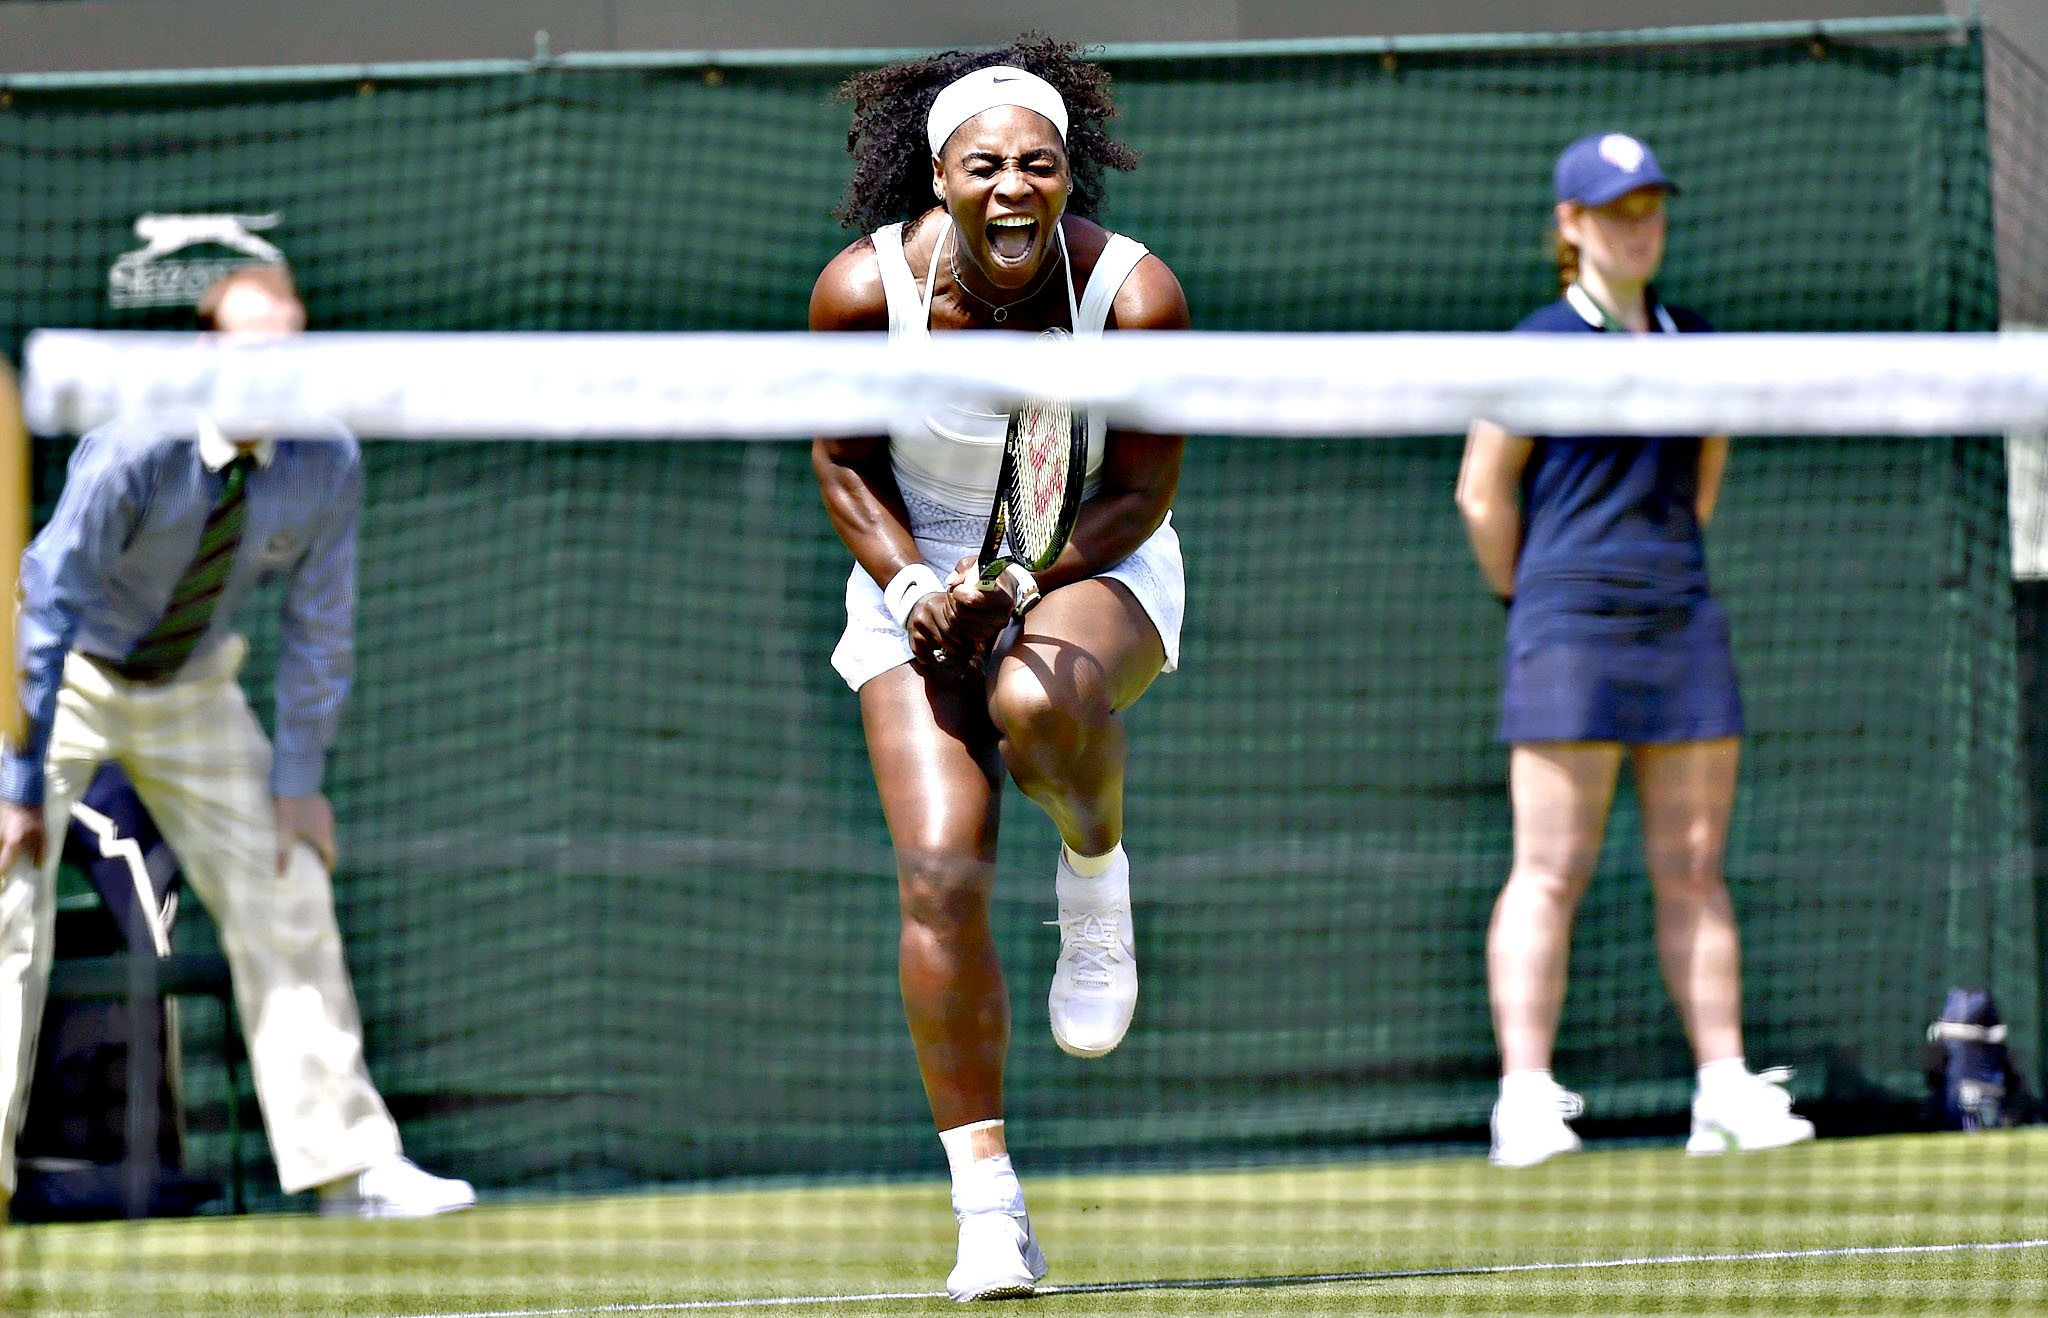 Serena Williams of U.S.A. reacts during her match against Margarita Gasparyan of Russia at the Wimbledon Tennis Championships in London...Serena Williams of U.S.A. reacts during her match against Margarita Gasparyan of Russia at the Wimbledon Tennis Championships in London, June 29, 2015